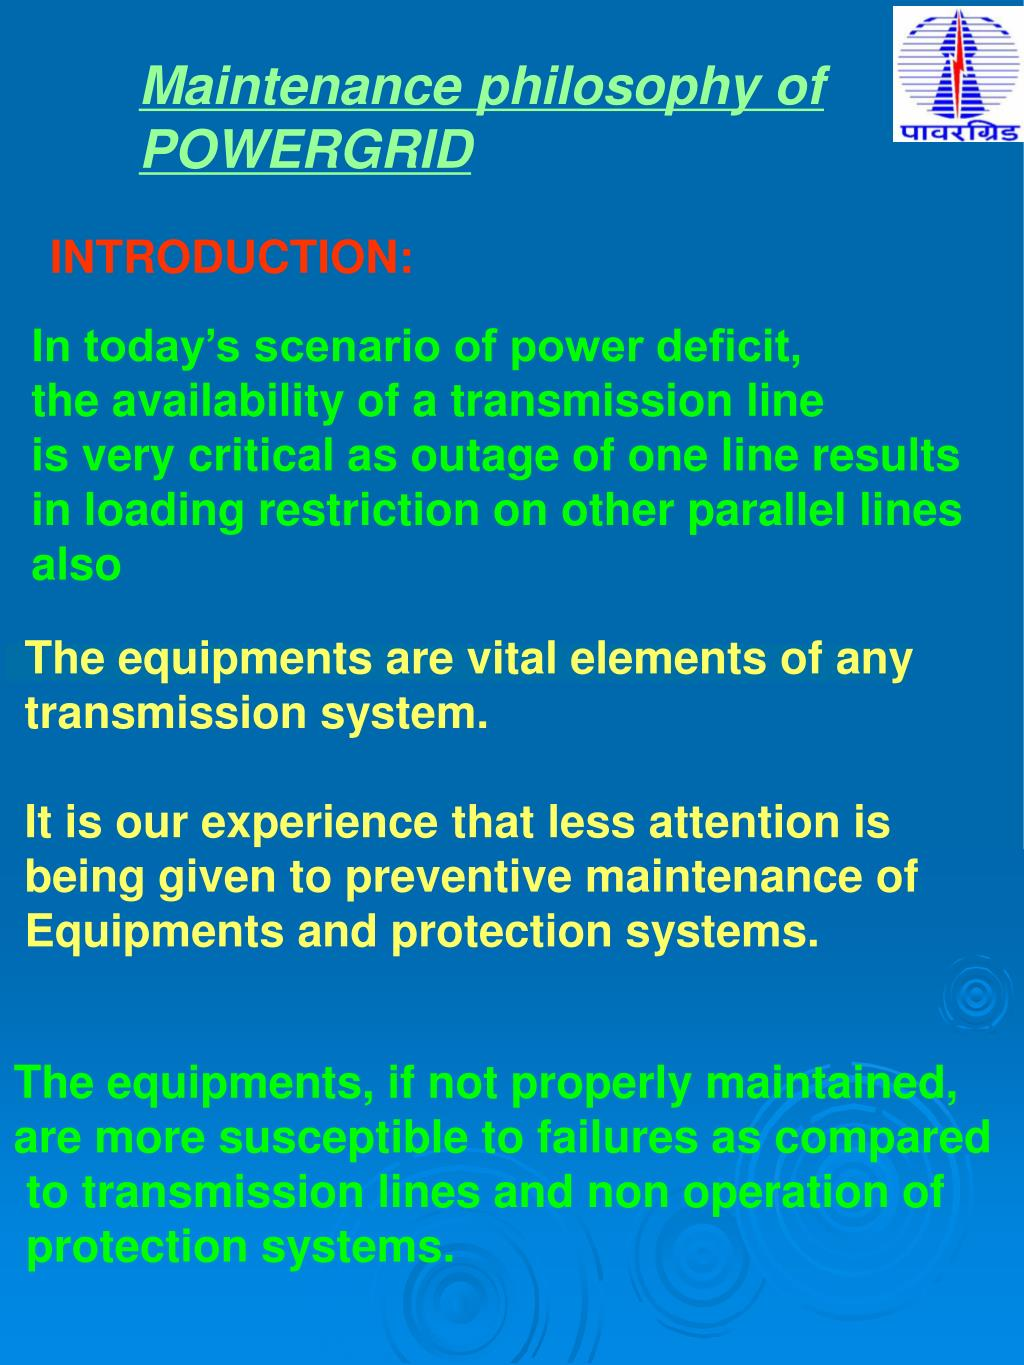 PPT - Maintenance philosophy of POWERGRID PowerPoint